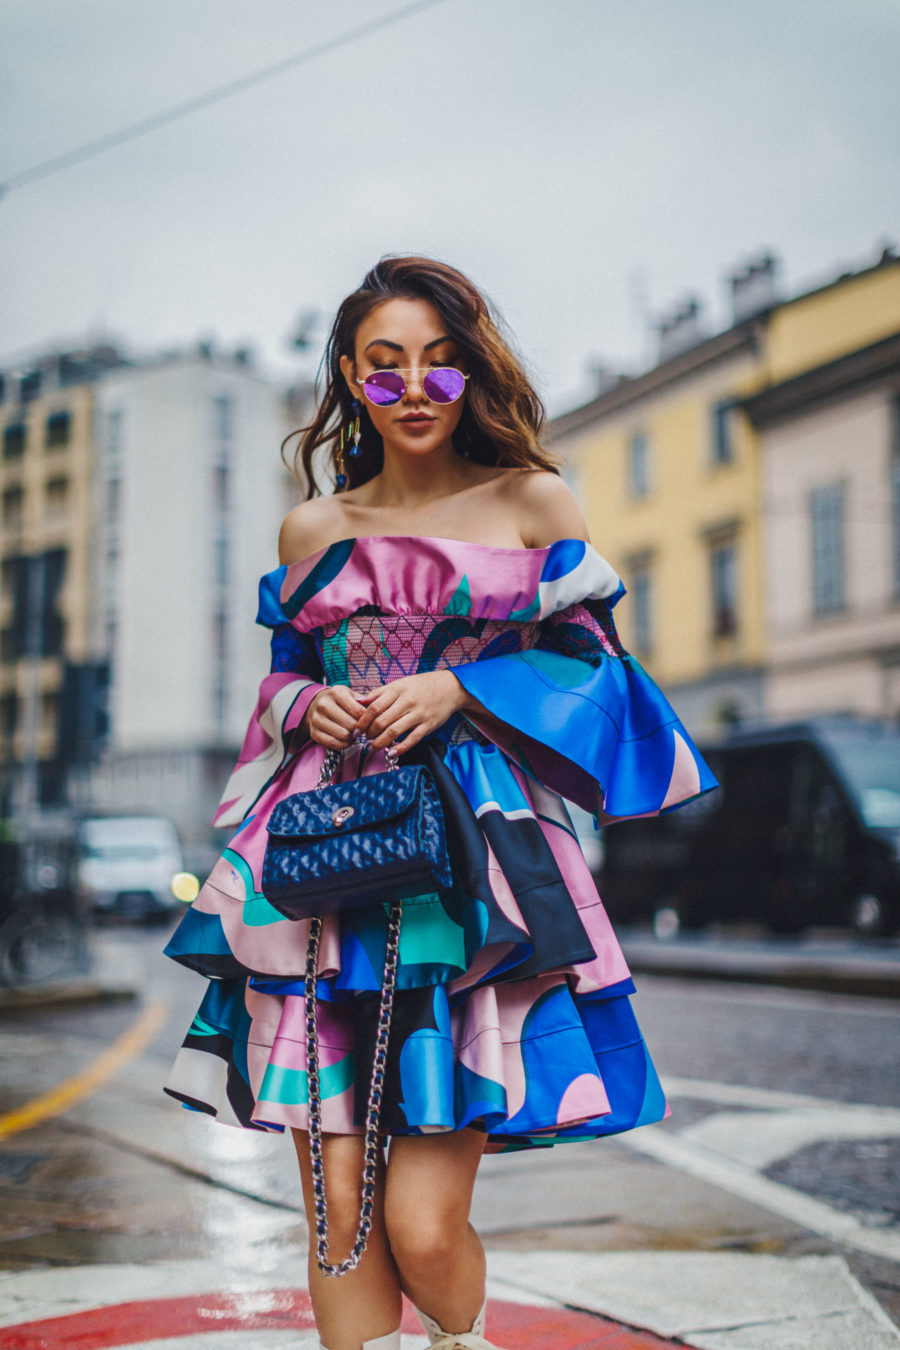 Shopbop Sale Alert - The Best Spring and Summer Items To Buy, Bold Statement Dresses, Off the shoulder dresses, Colorblock Dresses, Paris Streetstyle, Jessica Wang // NotJessFashion.com